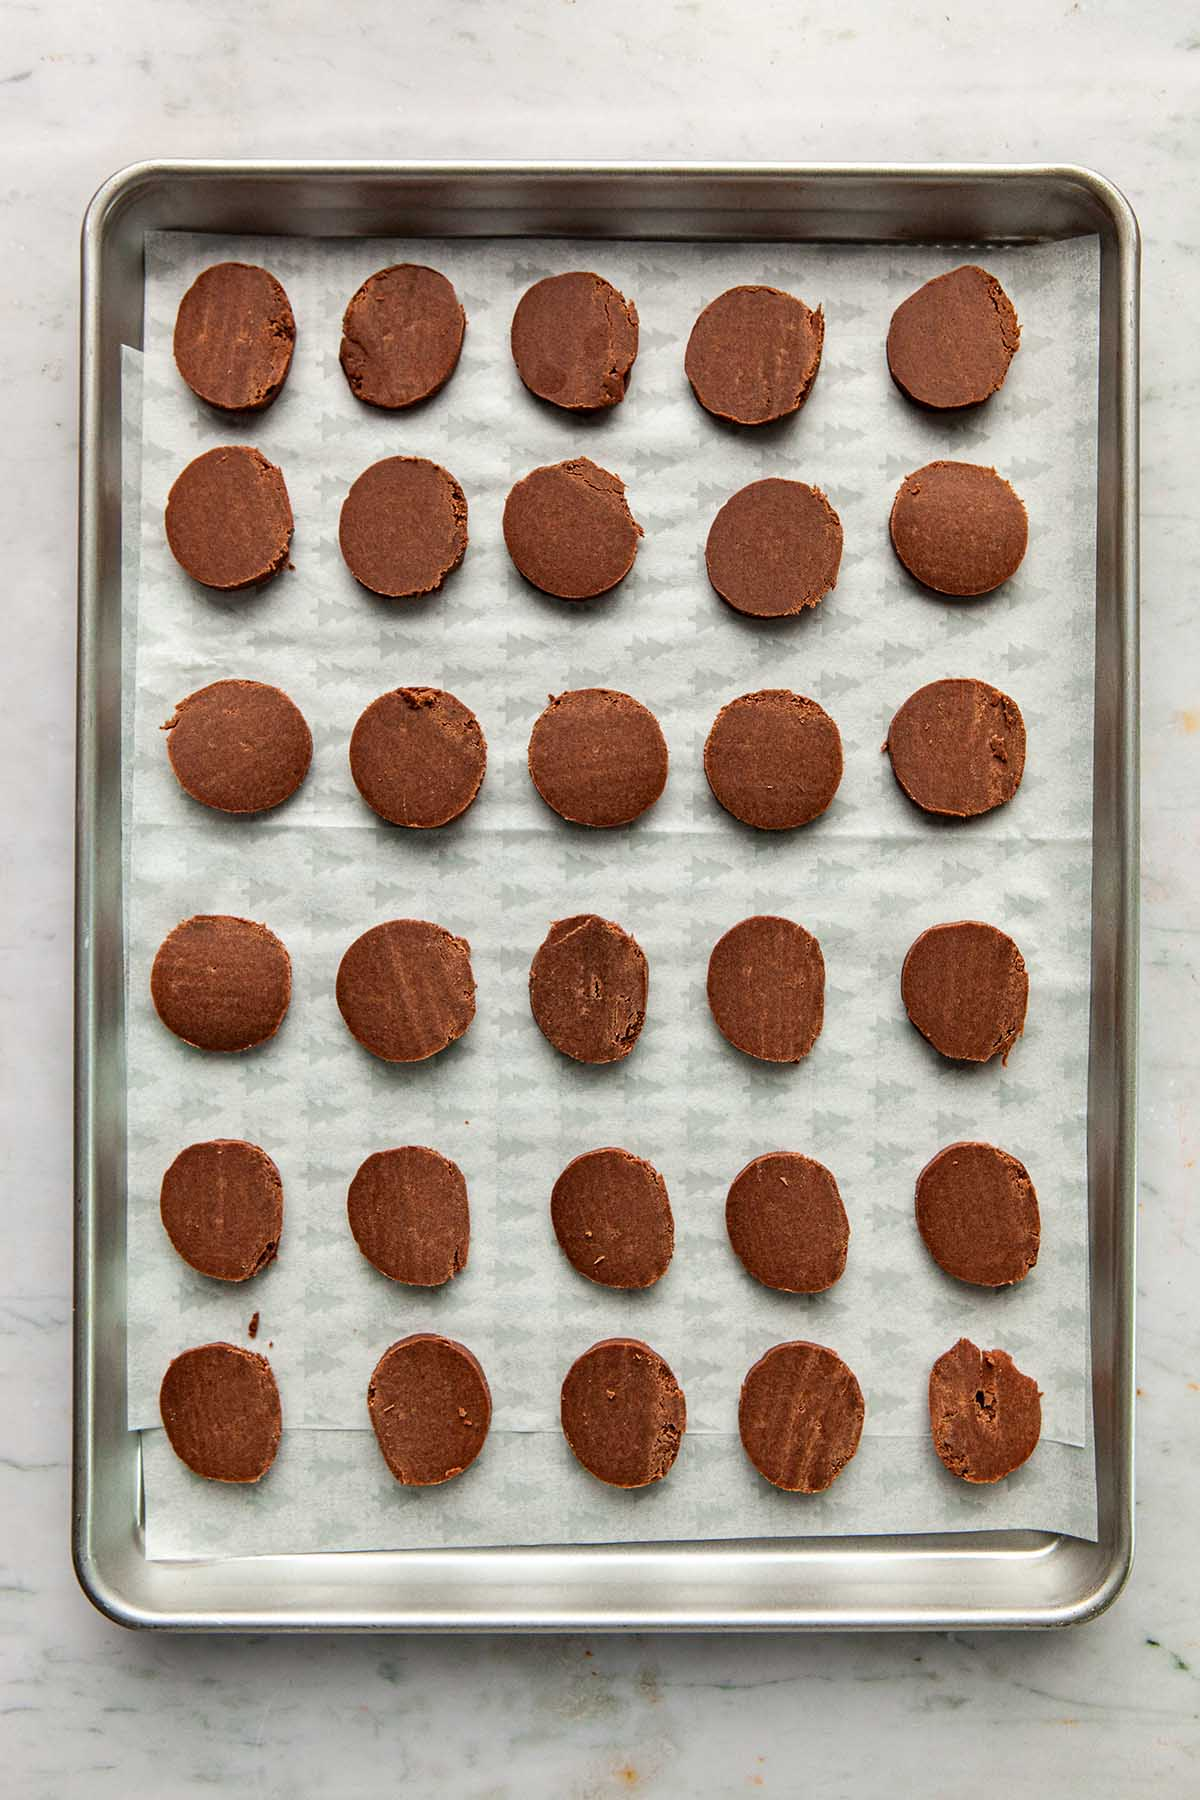 A tray of unbaked chocolate cookies.